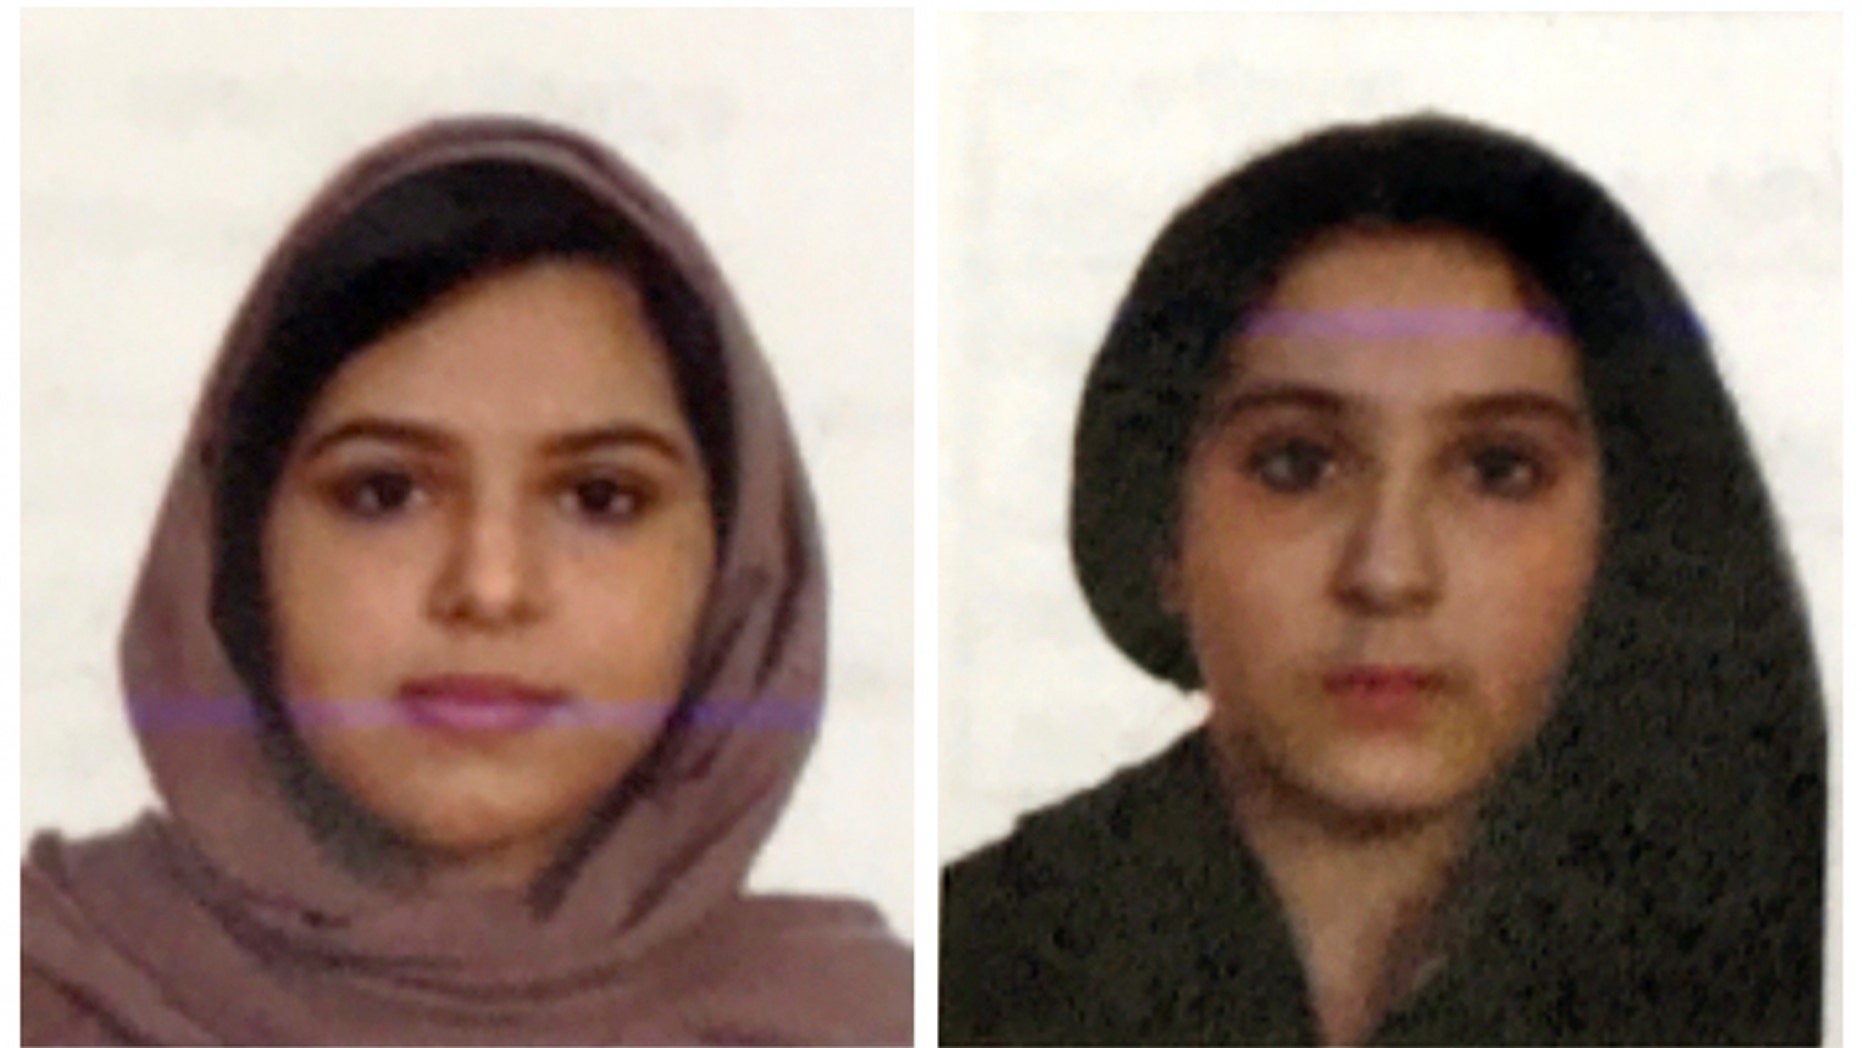 Saudi sisters who washed up in NY had killed themselves